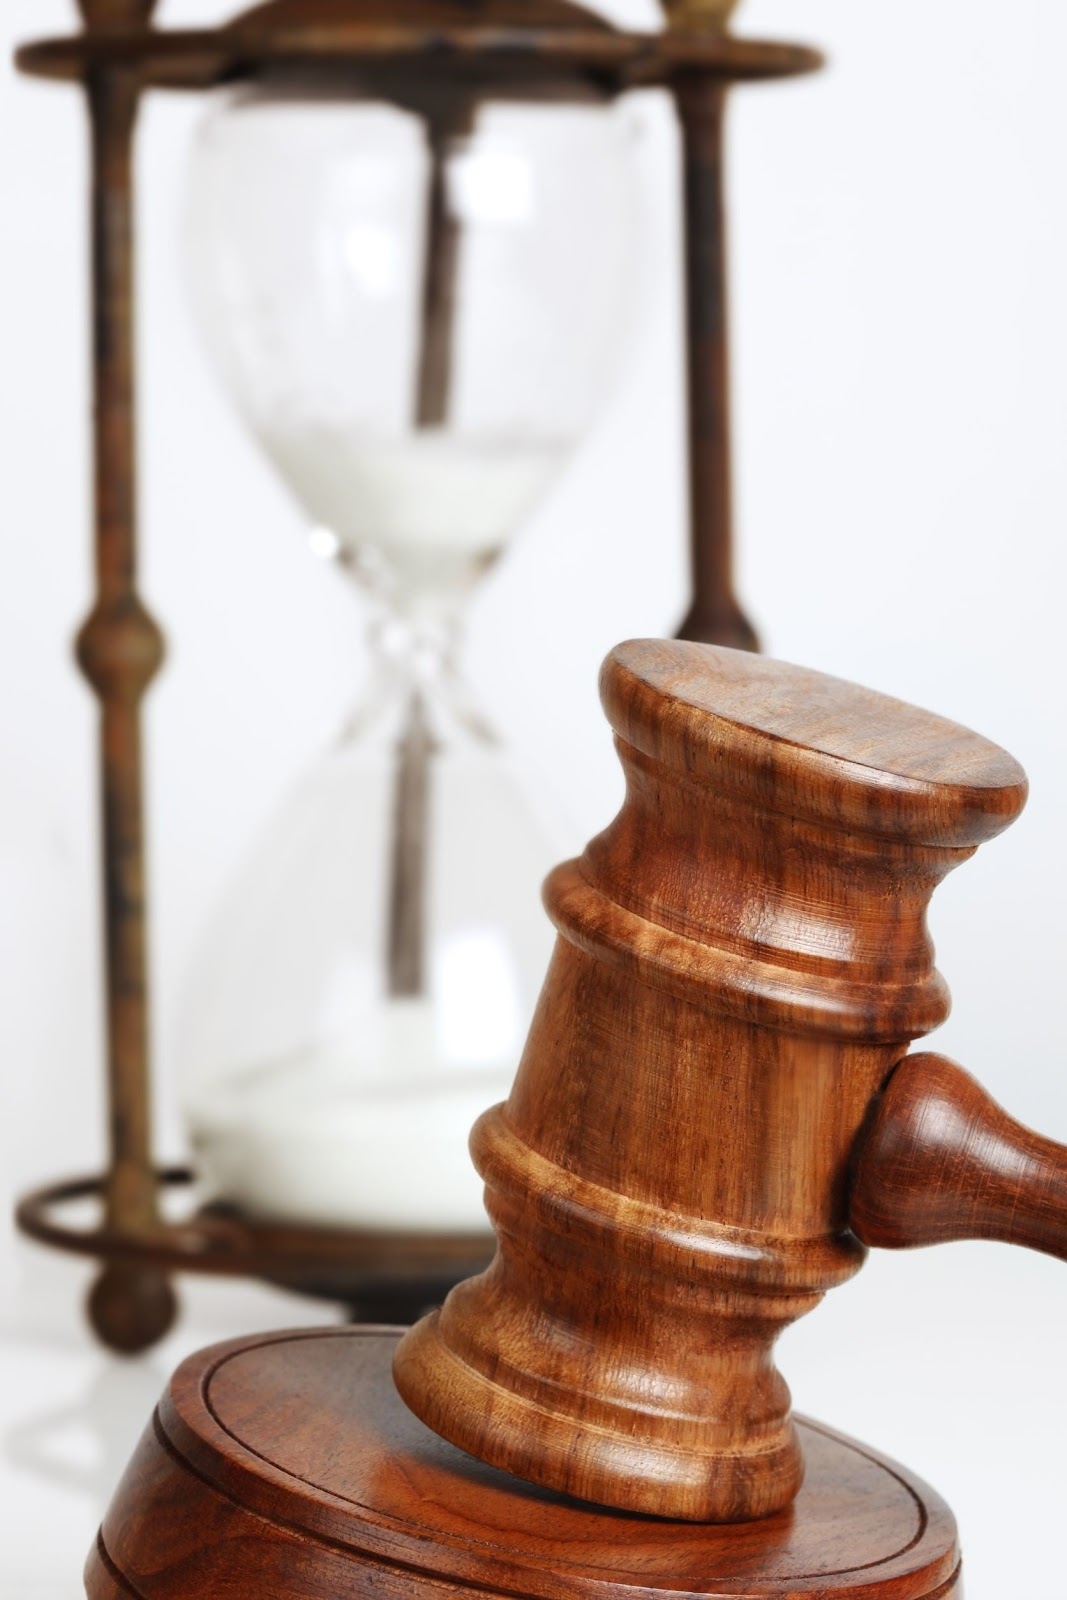 Statute of Limitations and Limits on Damage Awards on Medicla Malpractice in Florida